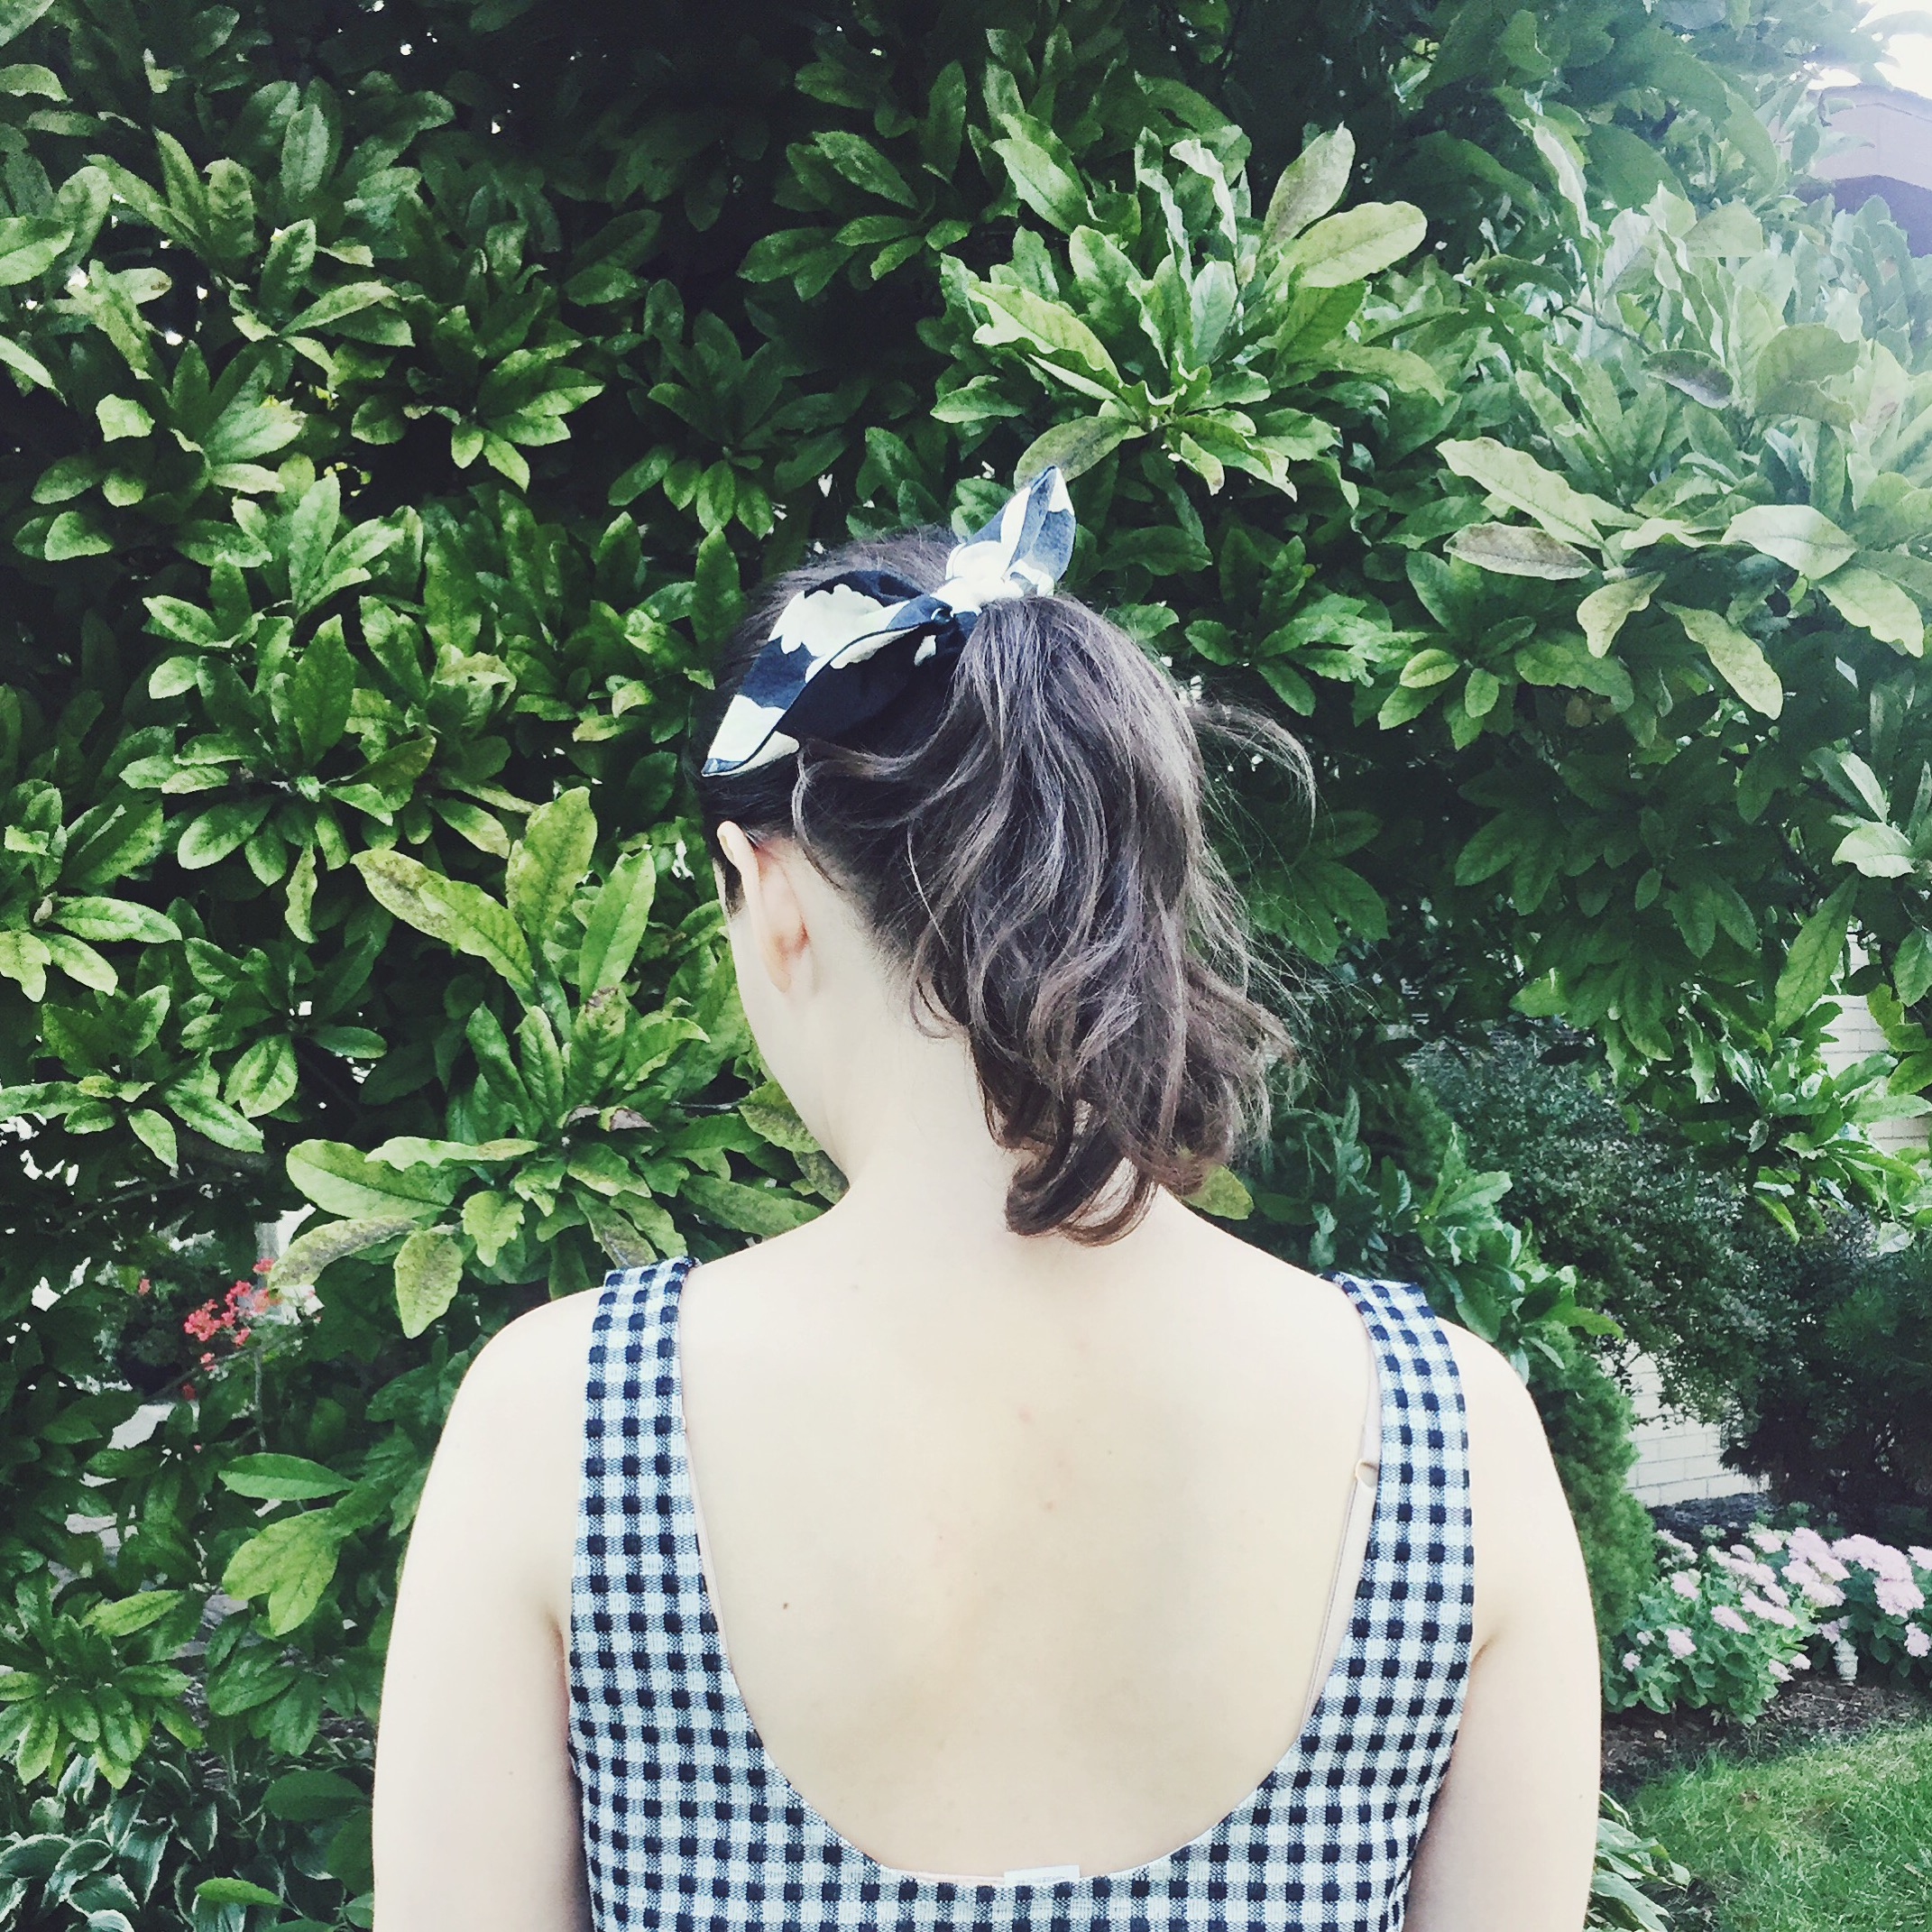 Club Monaco sells scrunchies now so I expect everyone to fall in line. Otherwise this photo has nothing to do with this post.